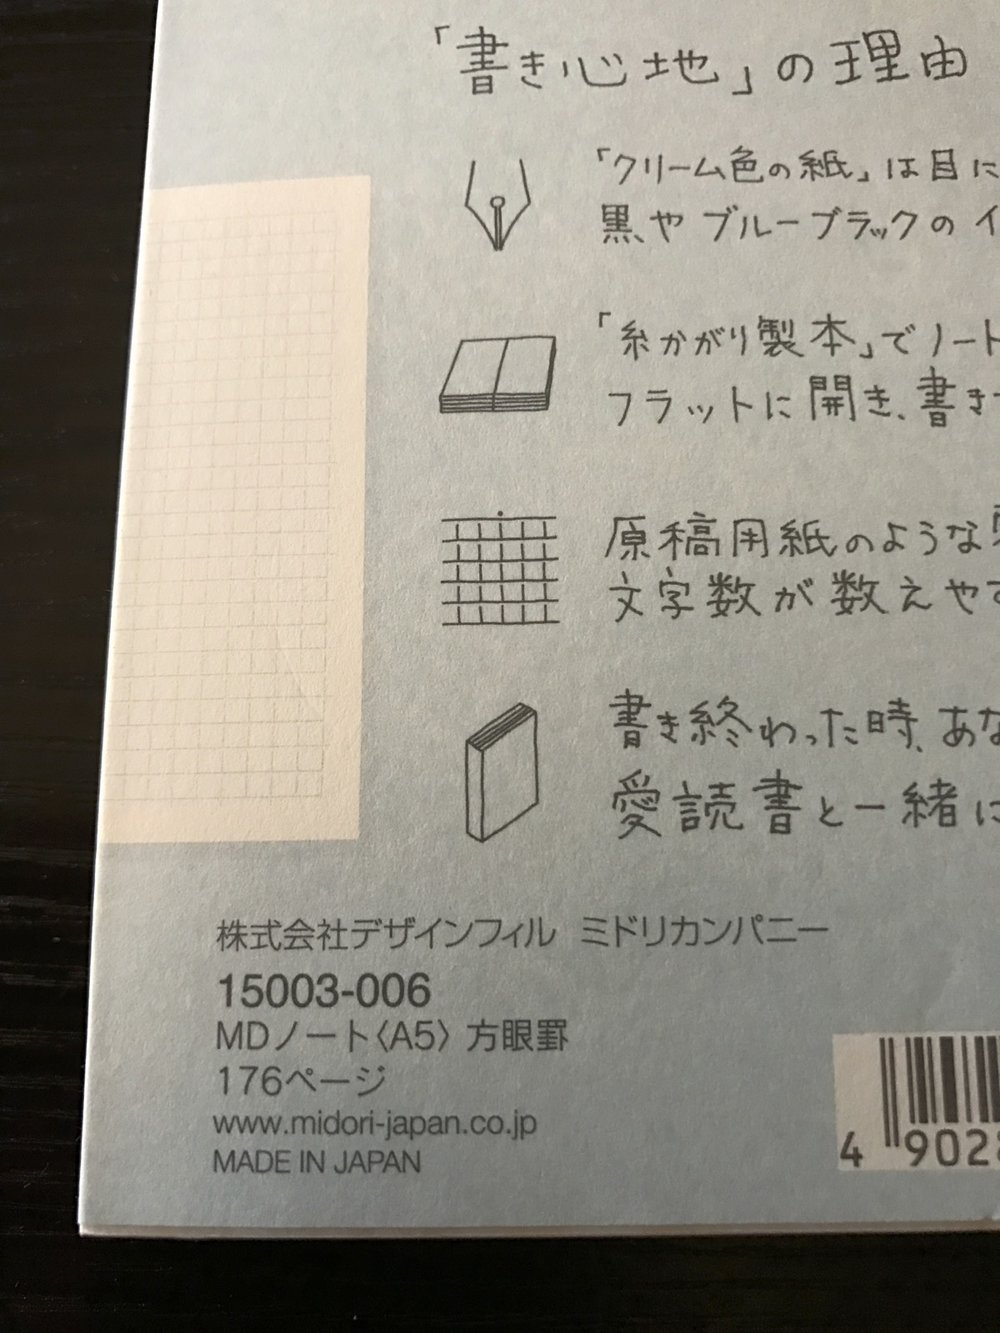 Perhaps someone who reads Japanese could translate for us?